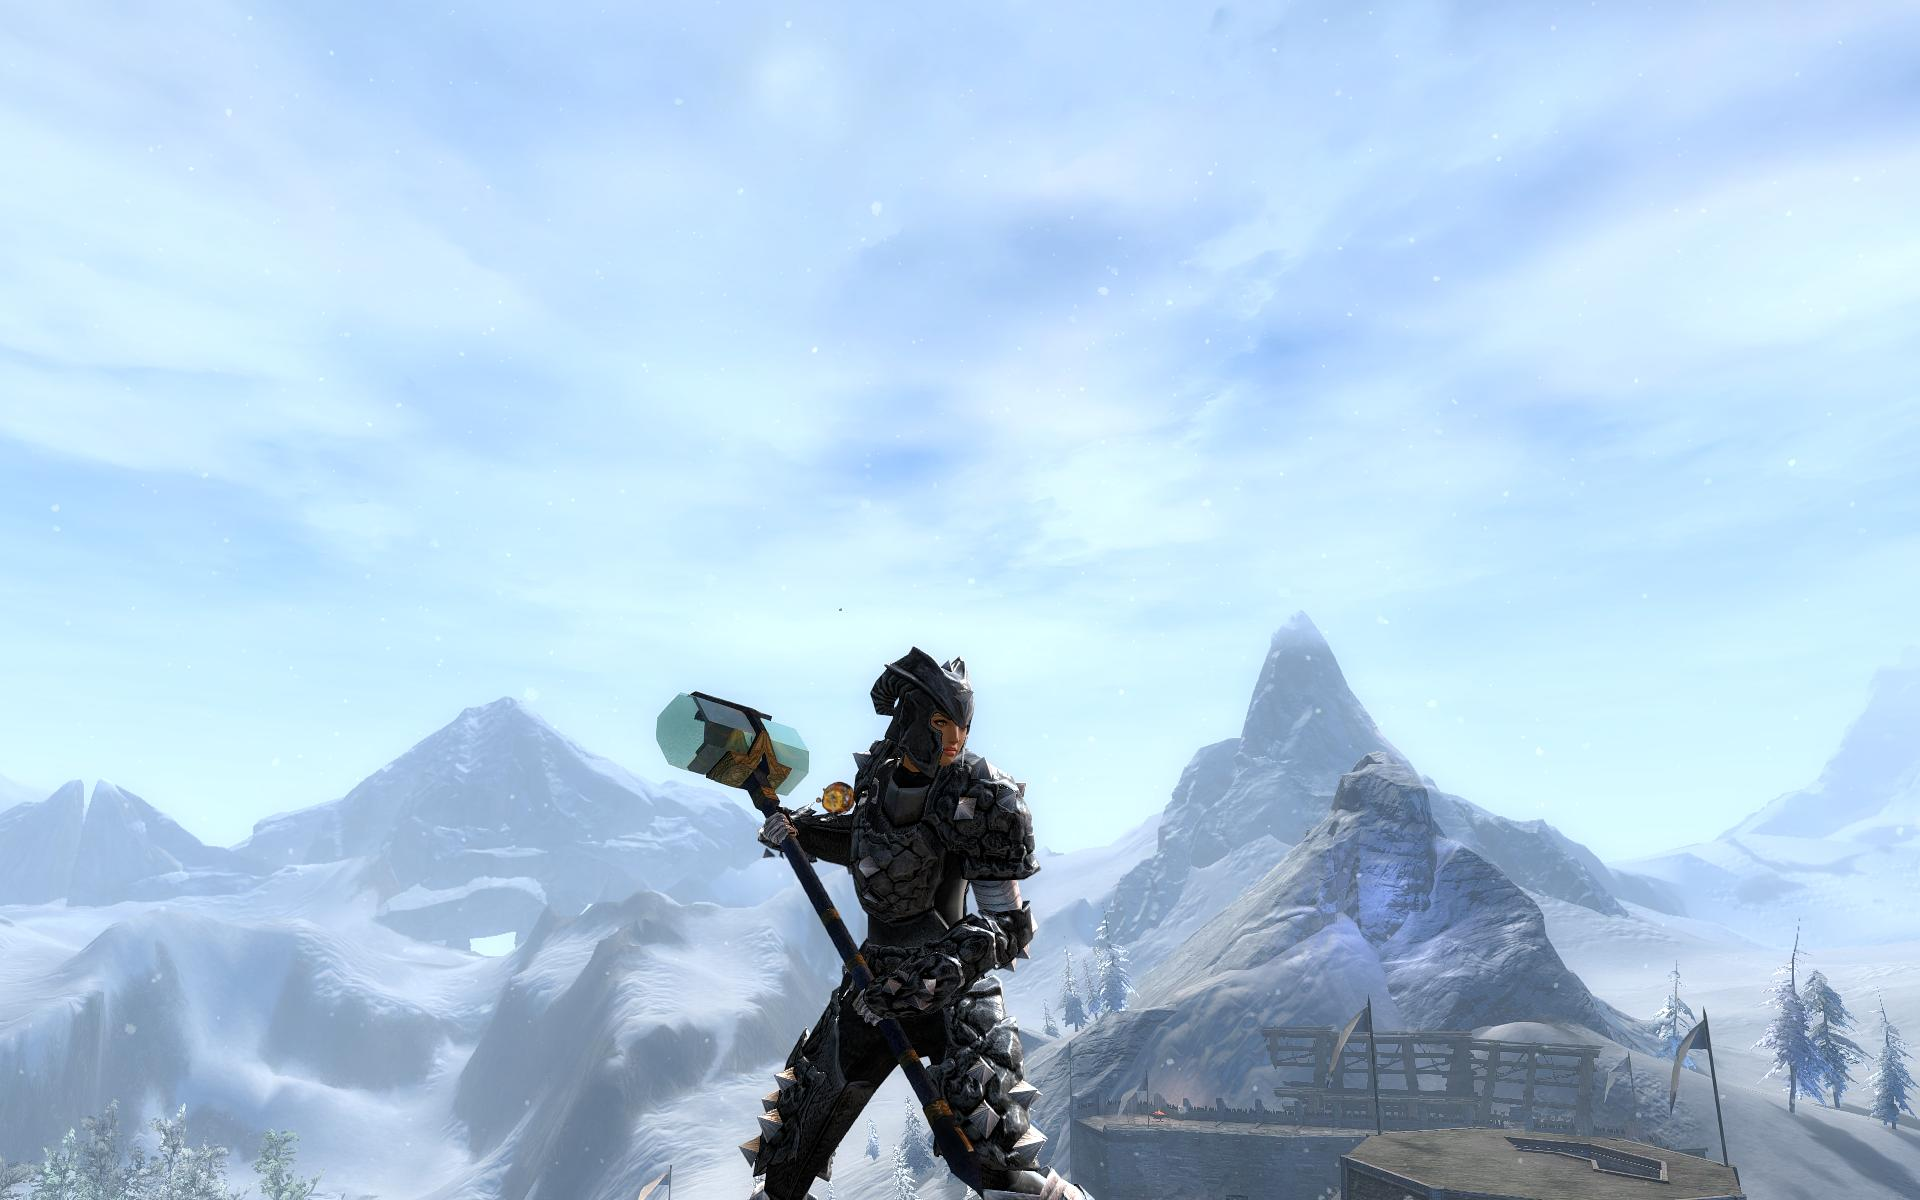 Guild wars 2 account Guide for A Warrior Roamer Type (part 1)